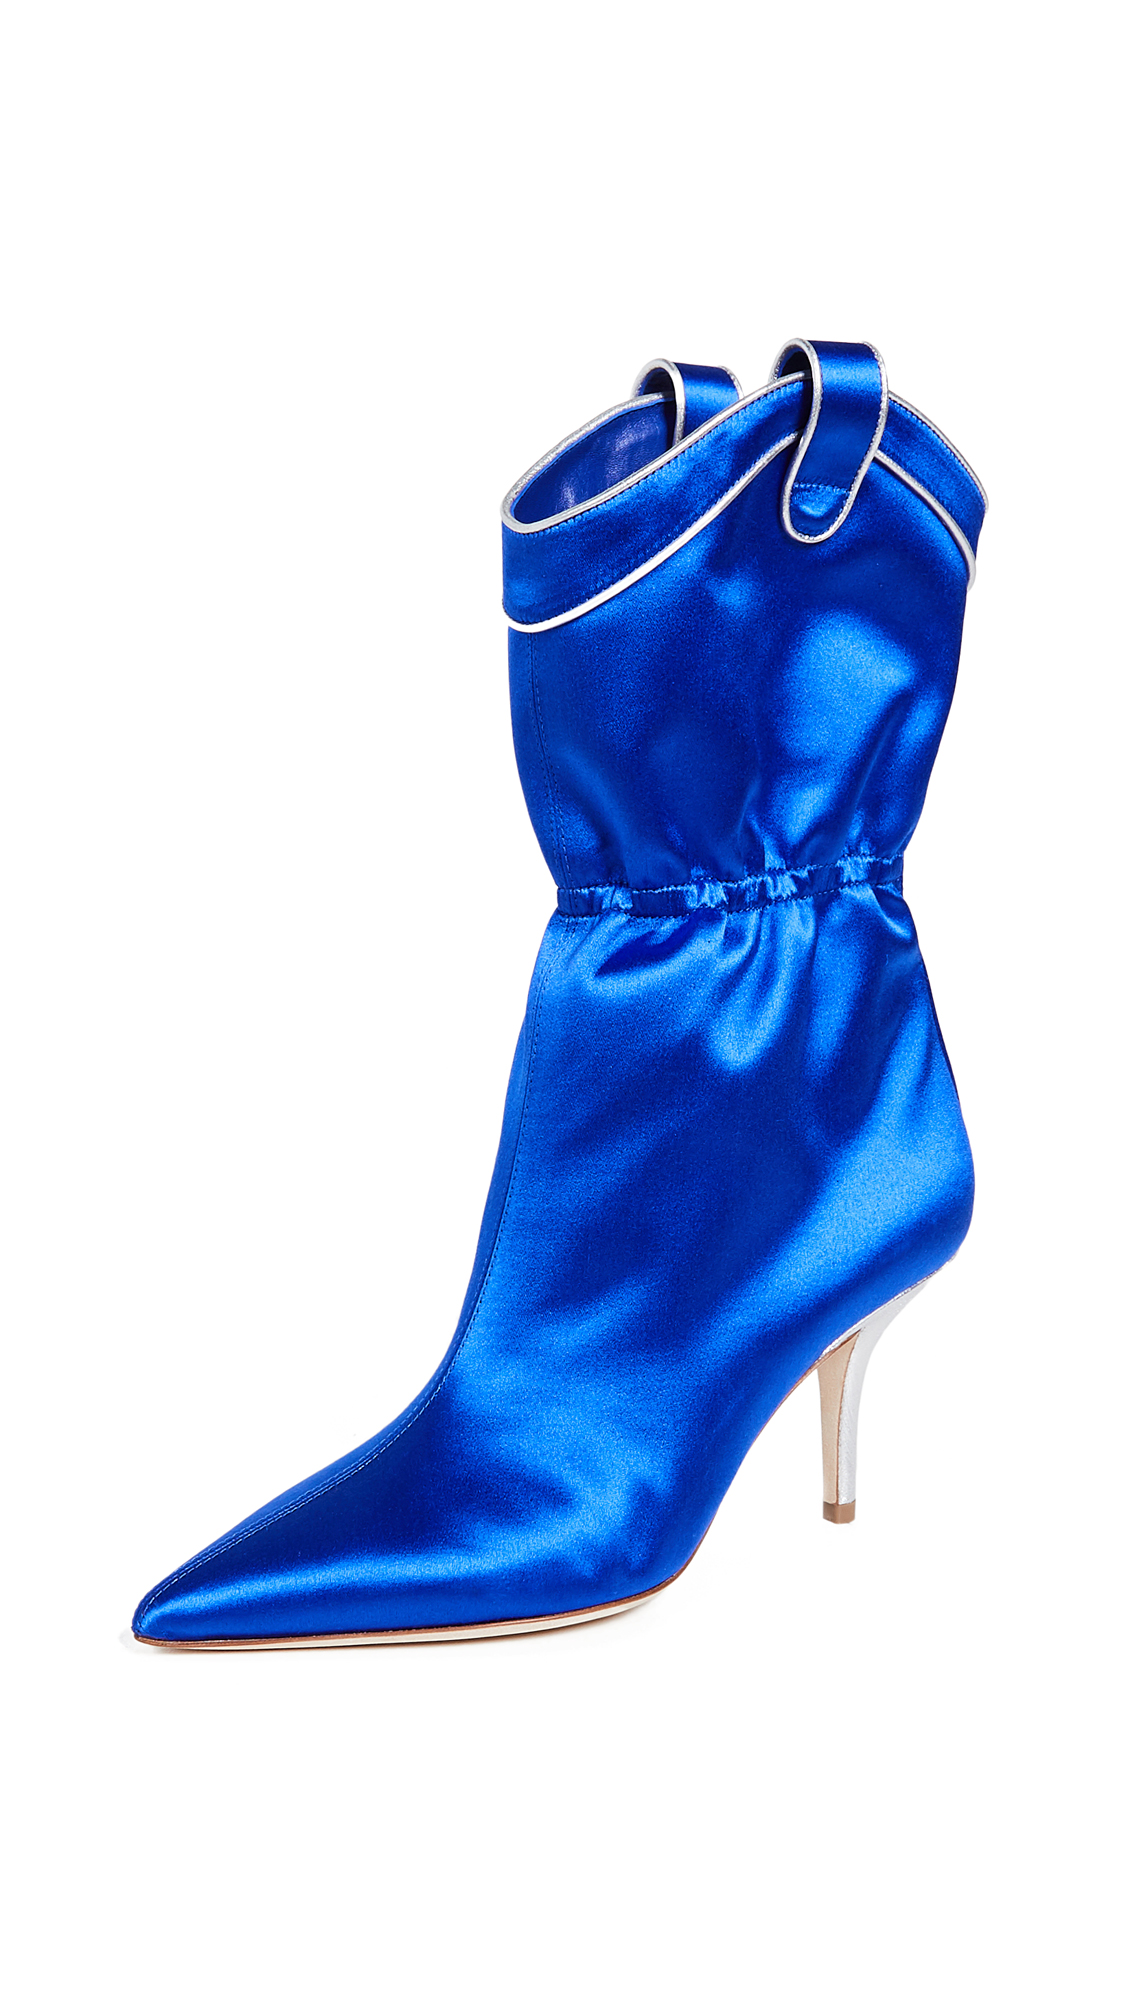 Malone Souliers by Roy Luwolt Daisy Boots - Blue/Silver